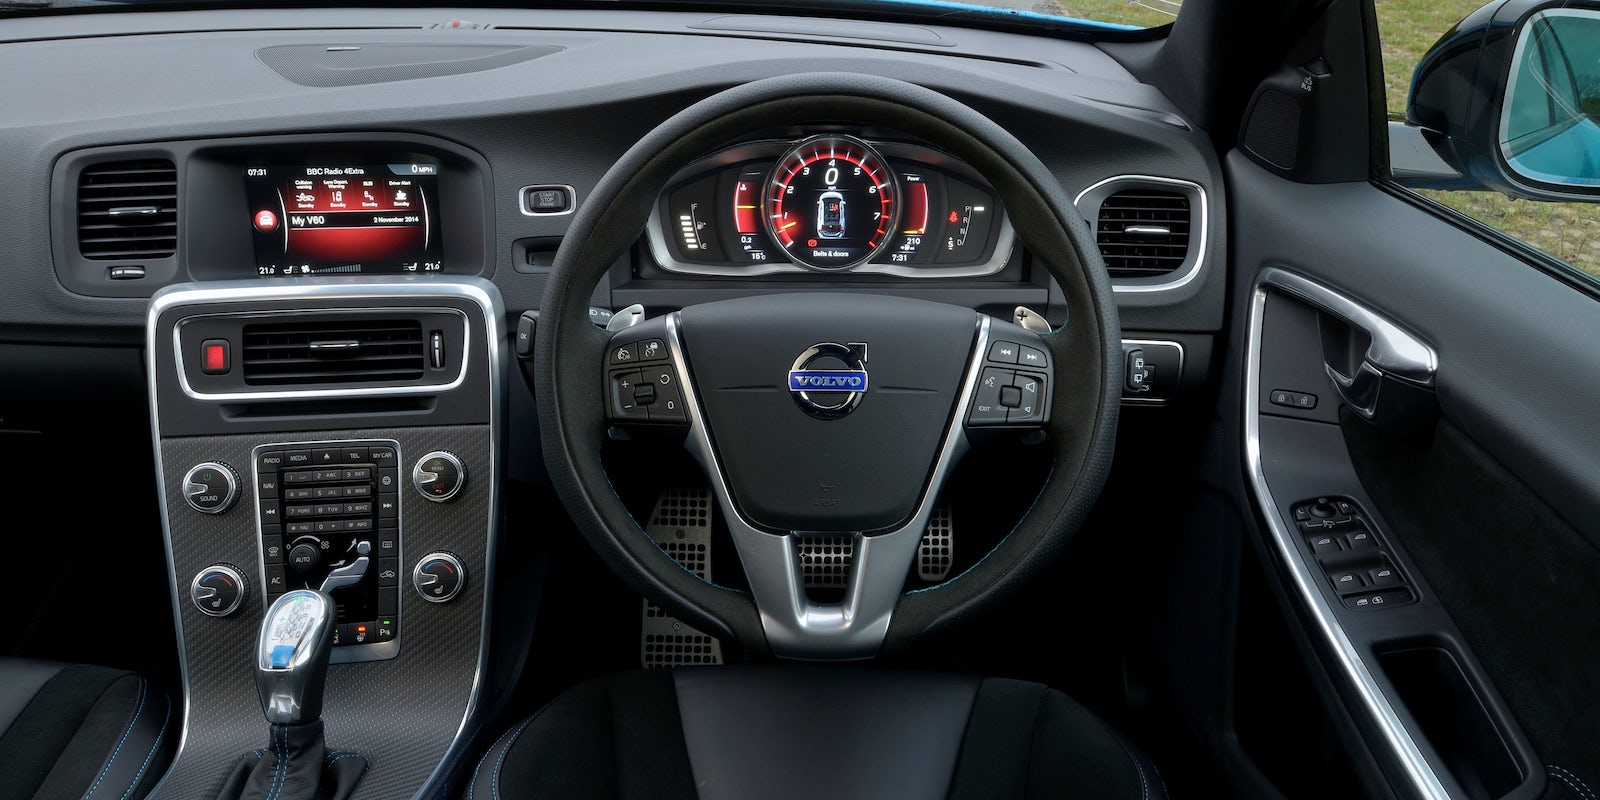 Volvo V60 interior and infotainment | carwow